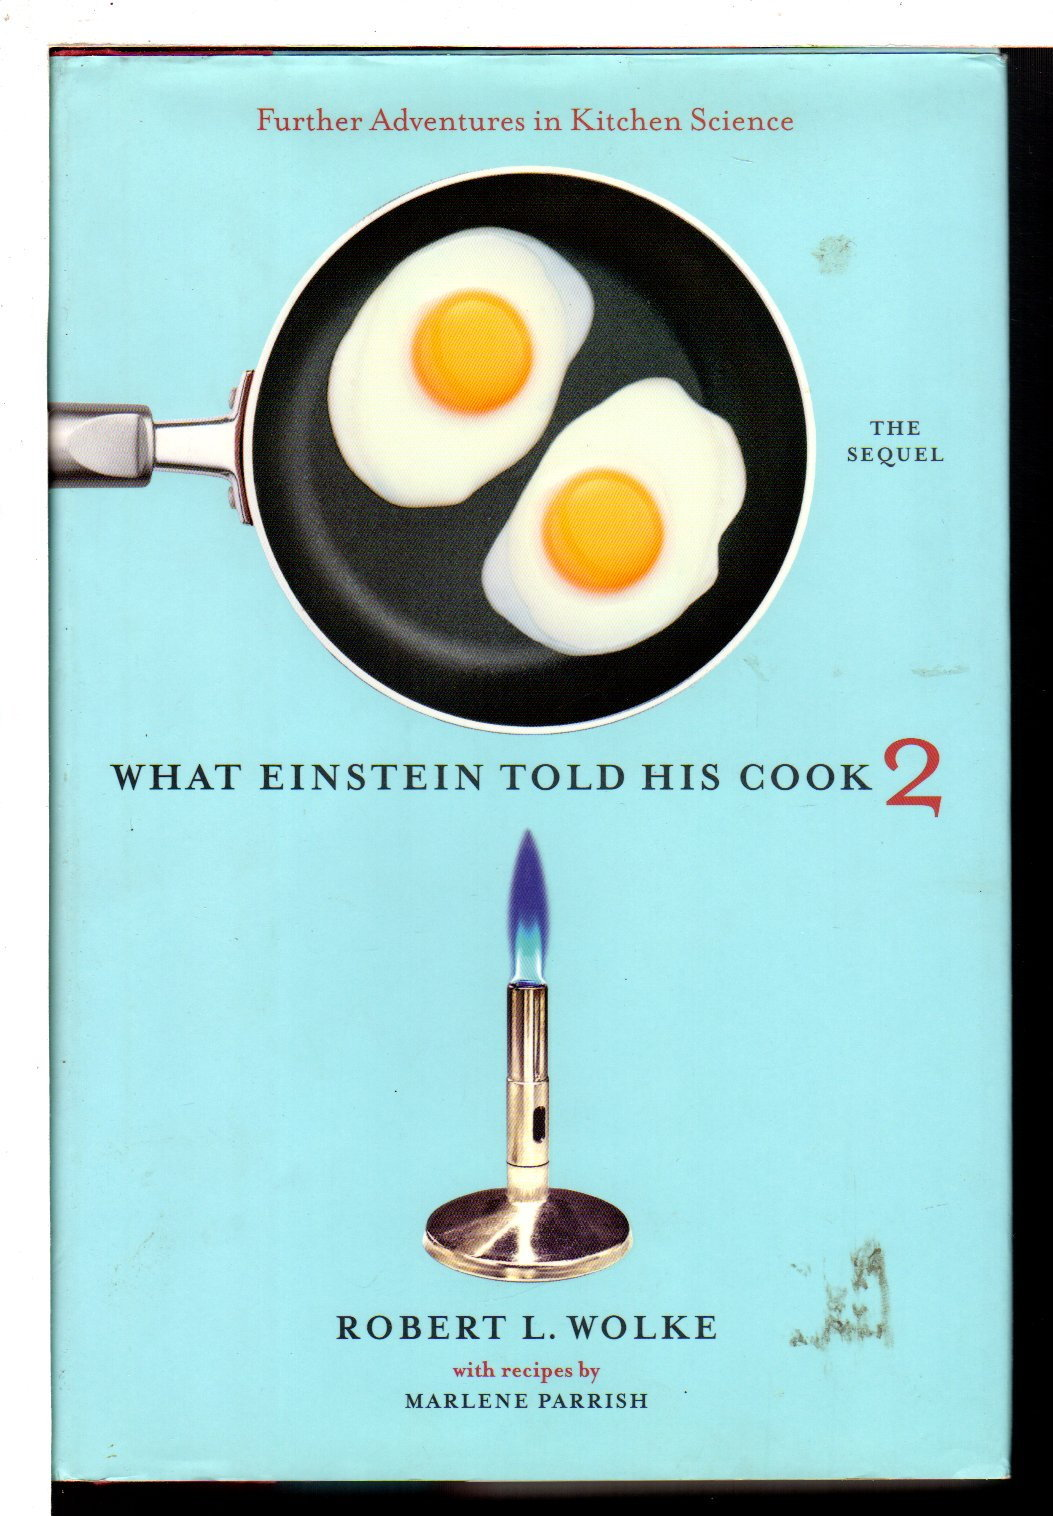 WOLKE, ROBERT L. WITH RECIPES BY MARLENE PARRISH. - WHAT EINSTEIN TOLD HIS COOK 2: The Sequel, Further Adventures in Kitchen Science.